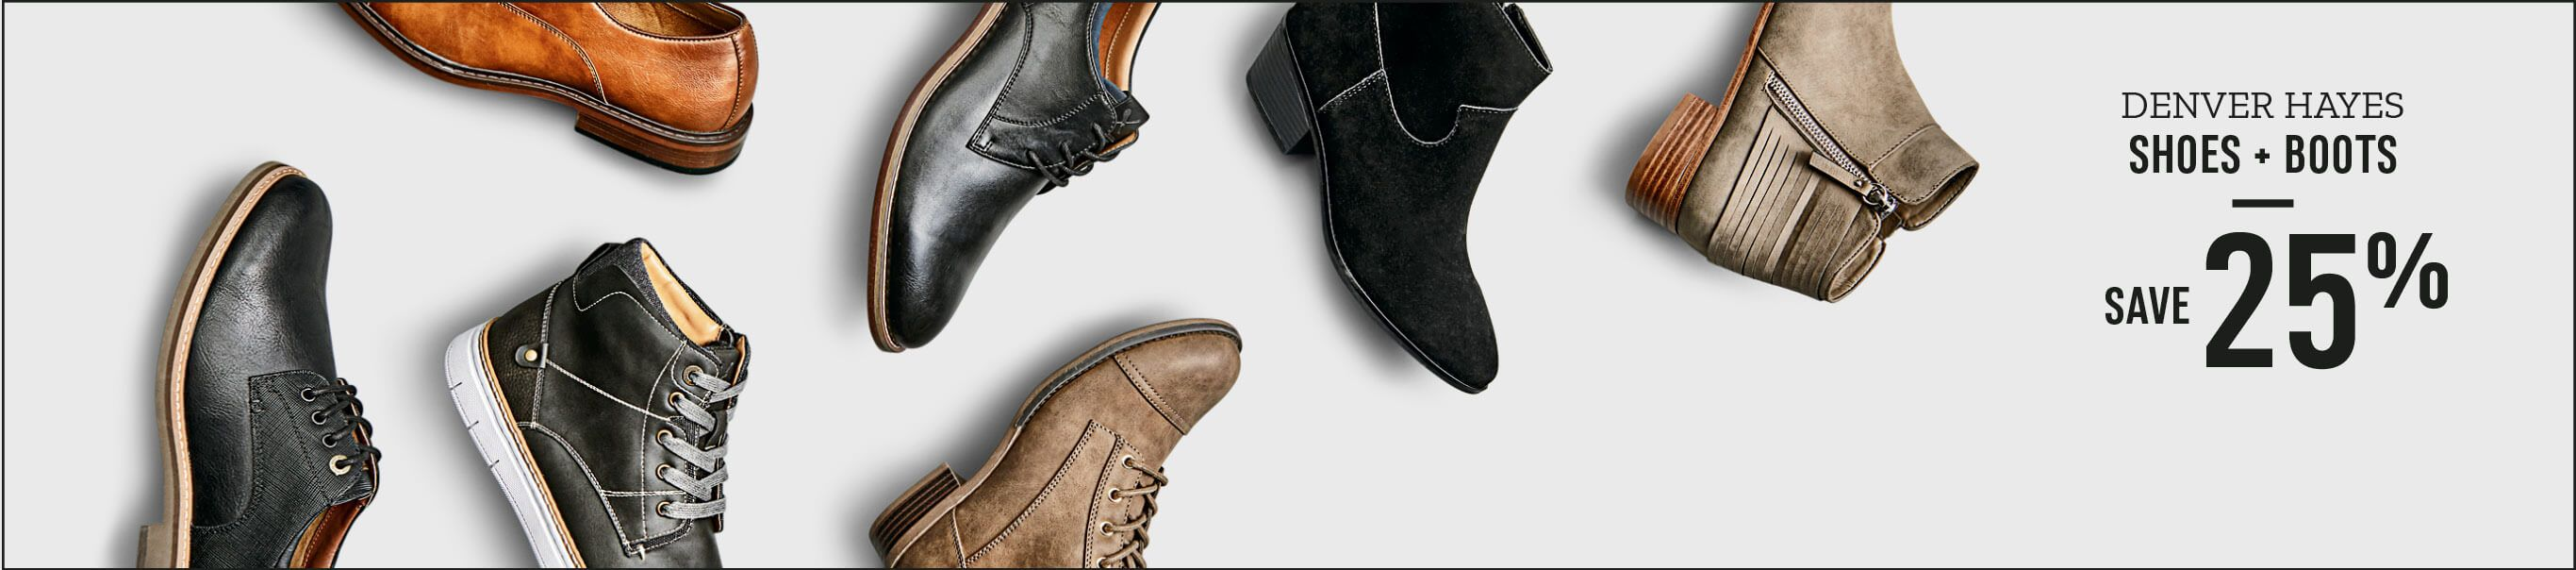 Casual Clothing, Jeans, Footwear, Workwear and More   Mark's